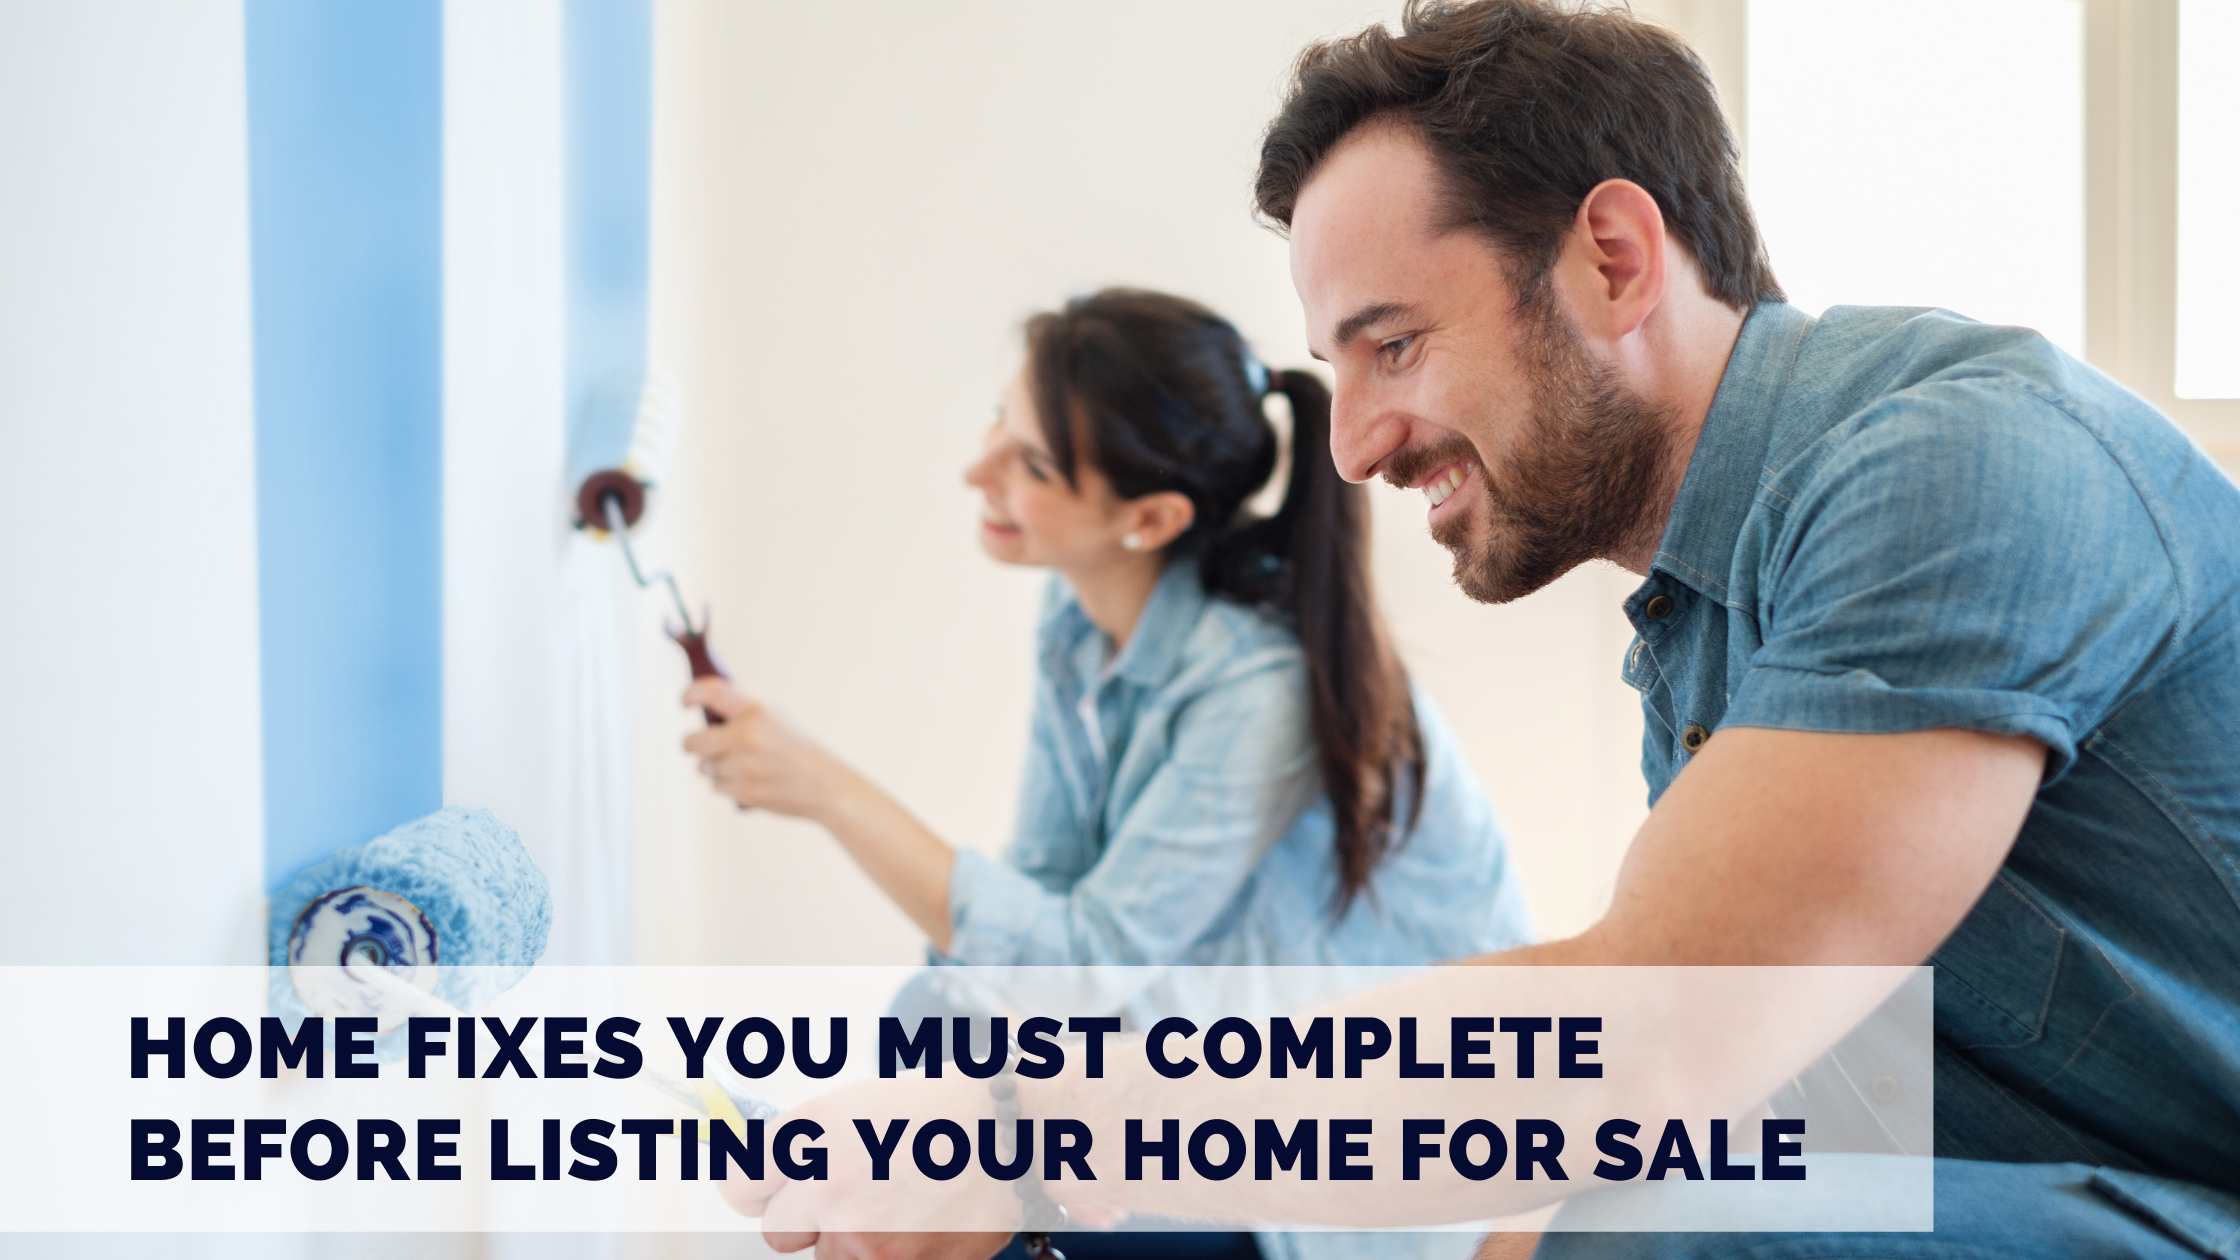 Home Fixes You Must Complete Before Listing Your Home for Sale